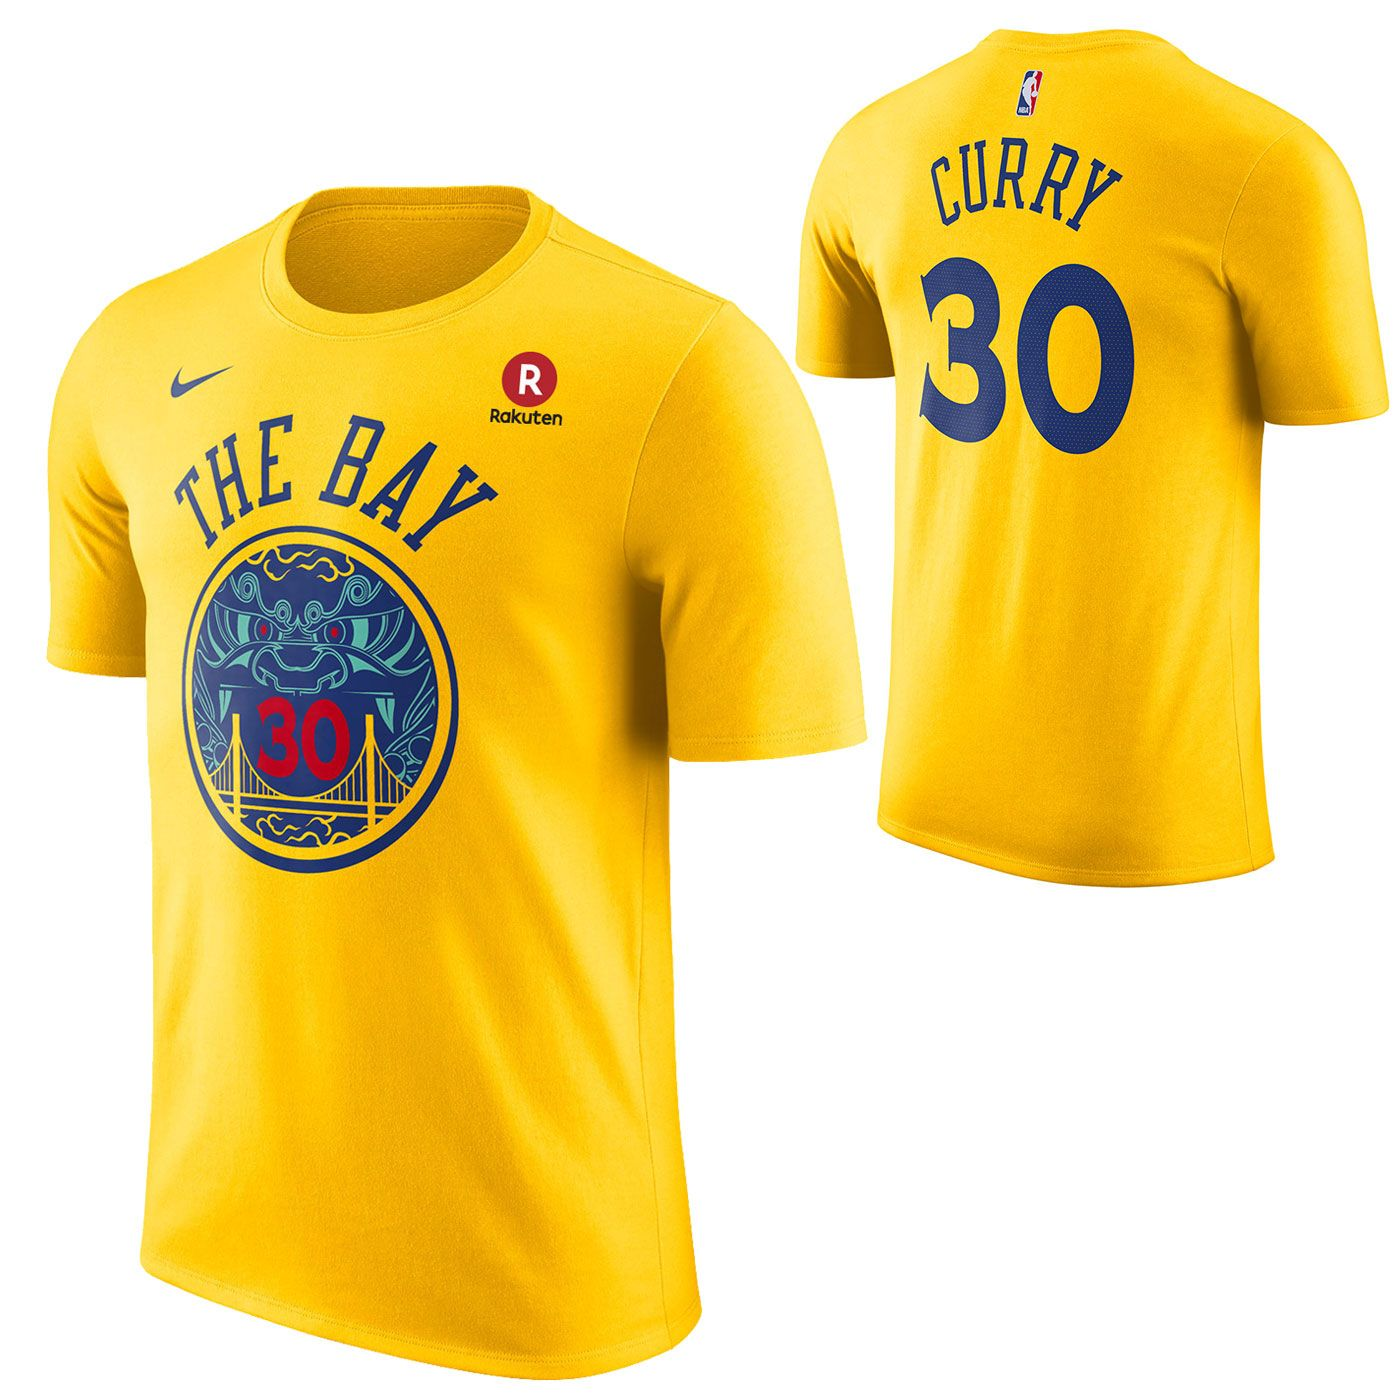 727ee6fe26c Golden State Warriors Nike Dri-FIT Men s City Edition Stephen Curry  30  Chinese Heritage Game Time Name   Number Tee - Gold